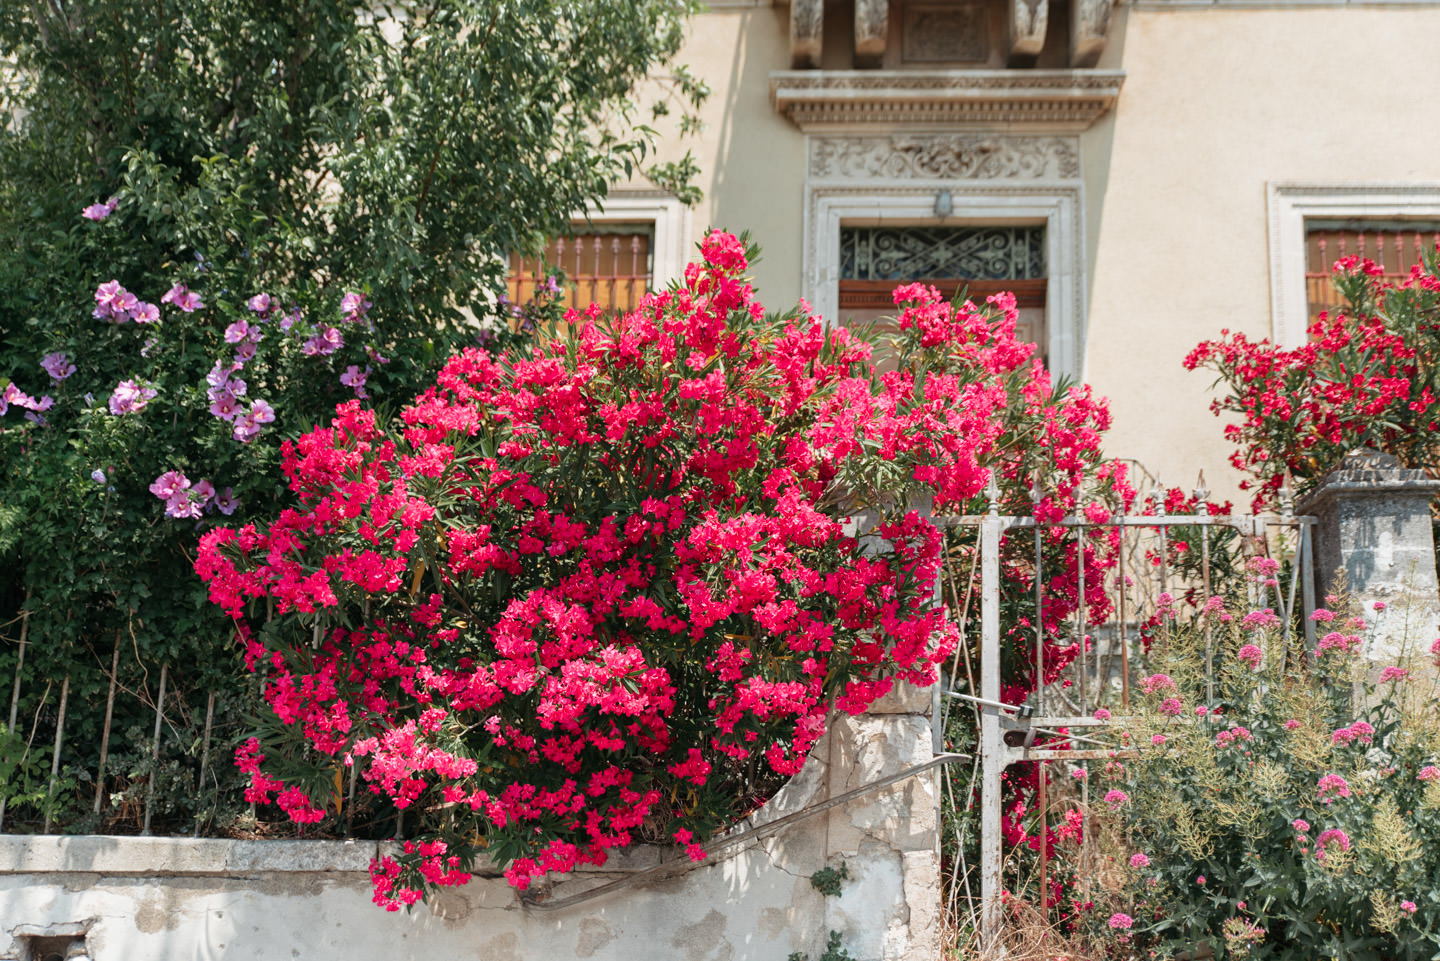 Blog-Mode-And-The-City-Lifestyle-Provence-Voyage-Gordes-5